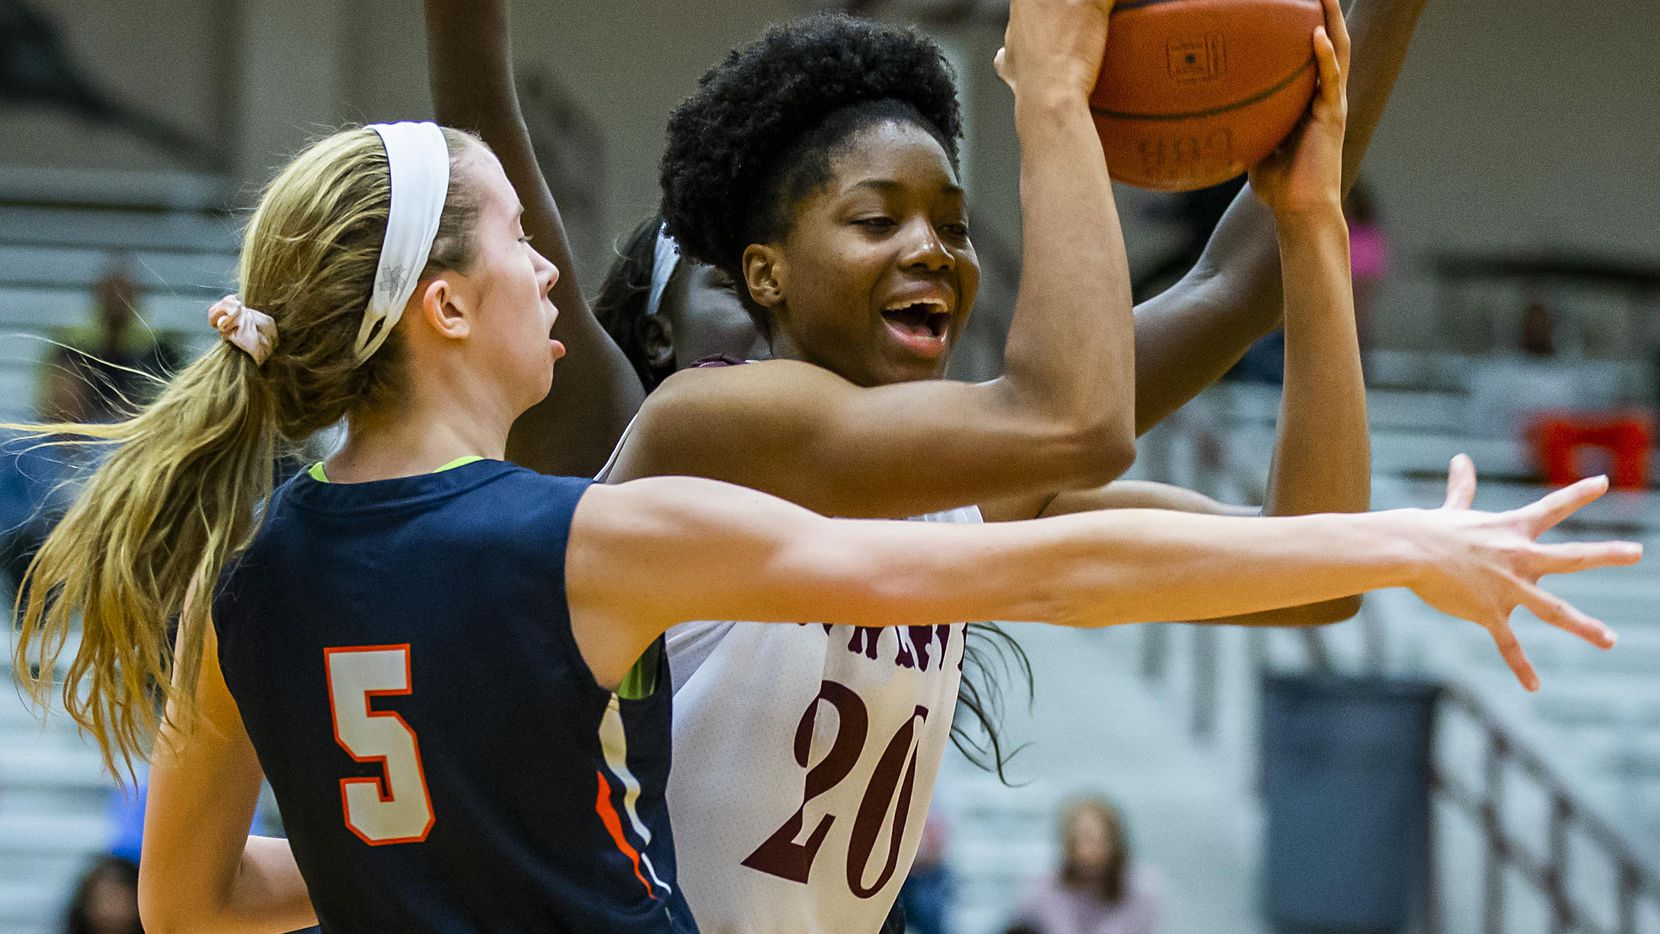 Rowlett forward Ngozi Obineke (20) is defended by Sachse guard Avery Crouse (5) during a District 10-6A girls basketball game on Friday, Jan. 11, 2019, in Rowlett, Texas. (Smiley N. Pool/The Dallas Morning News)